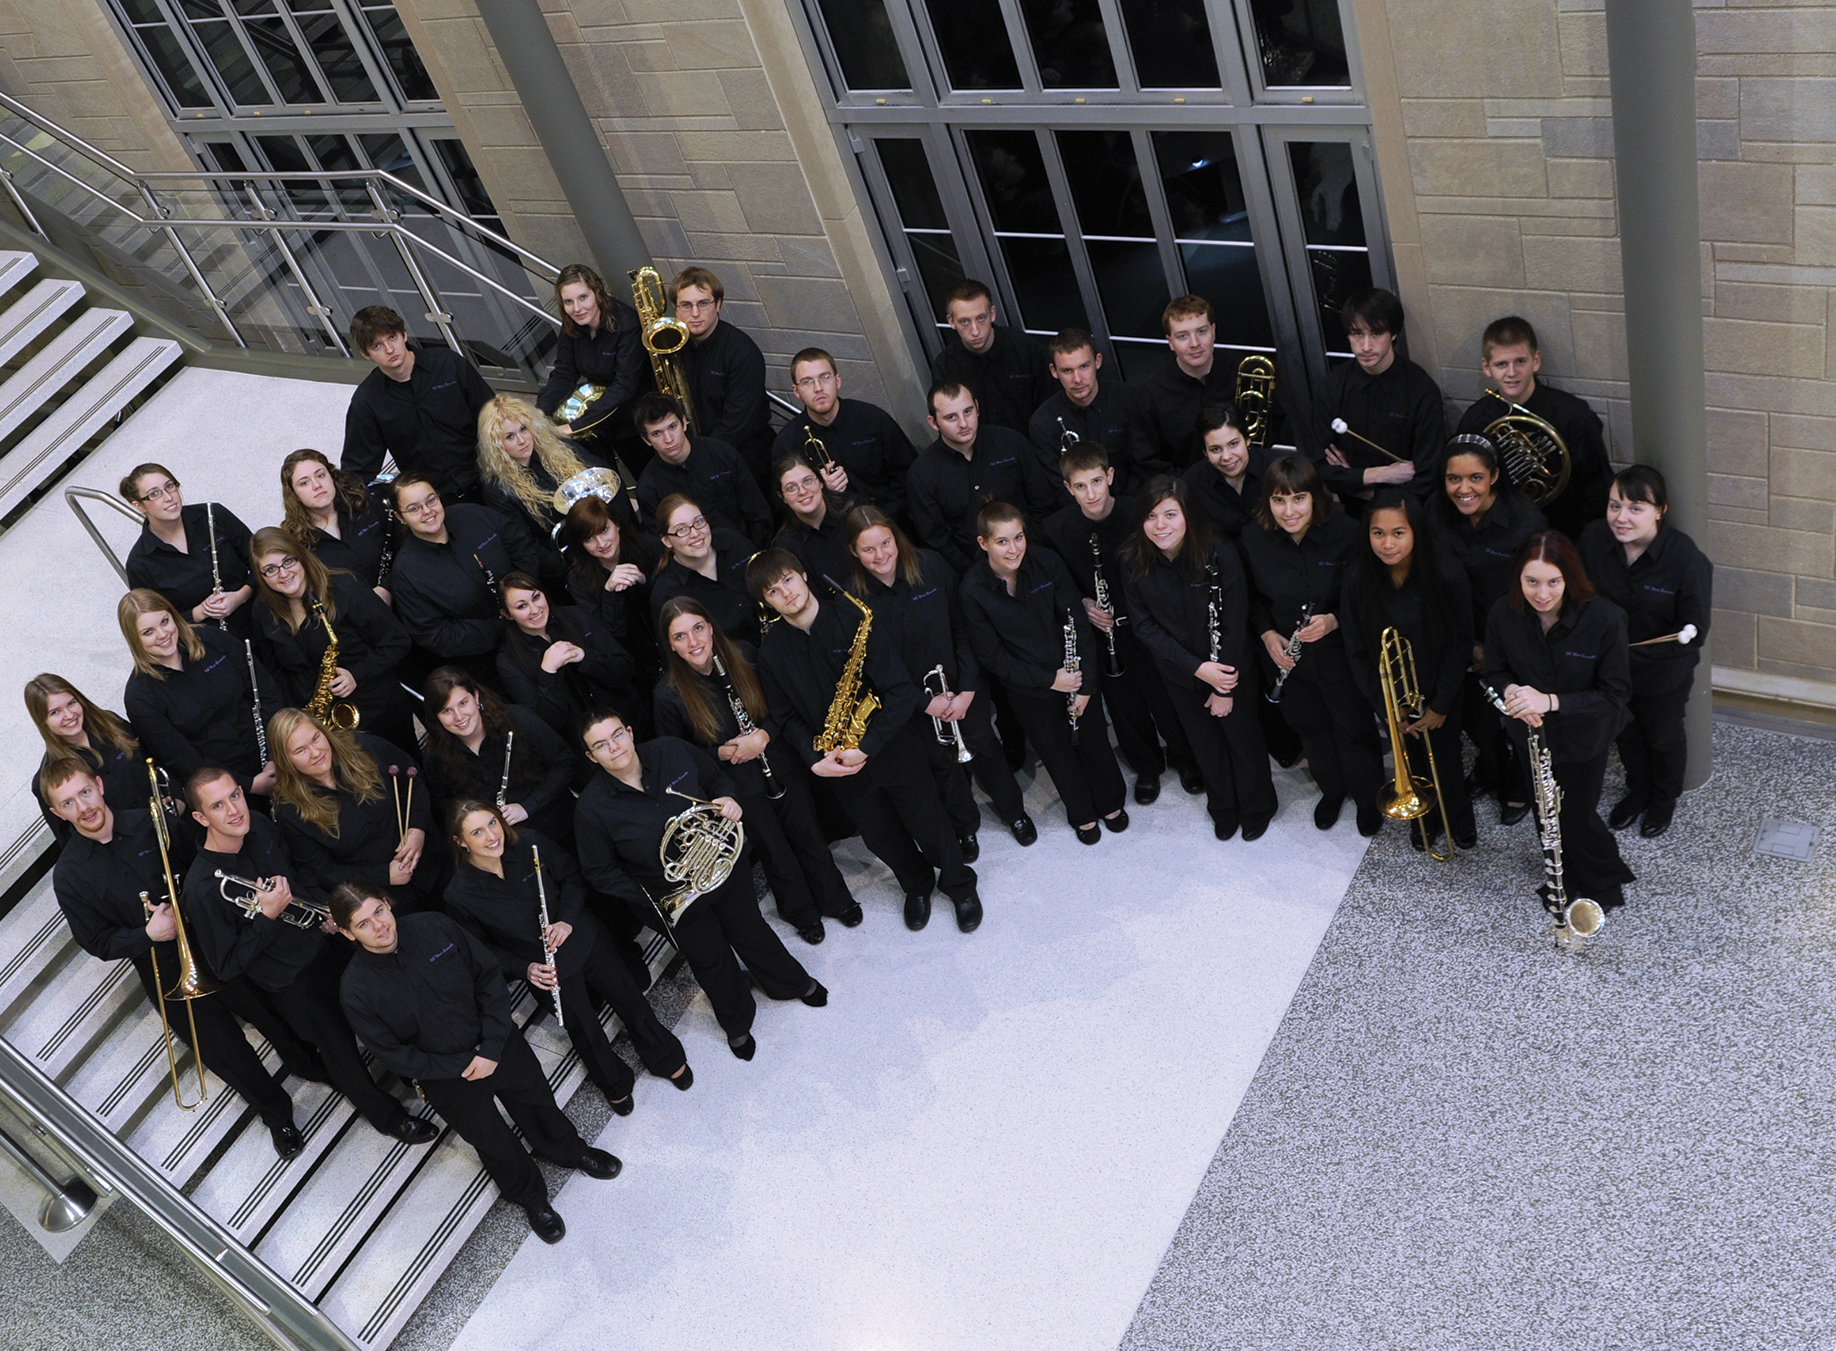 Ue wind ensemble